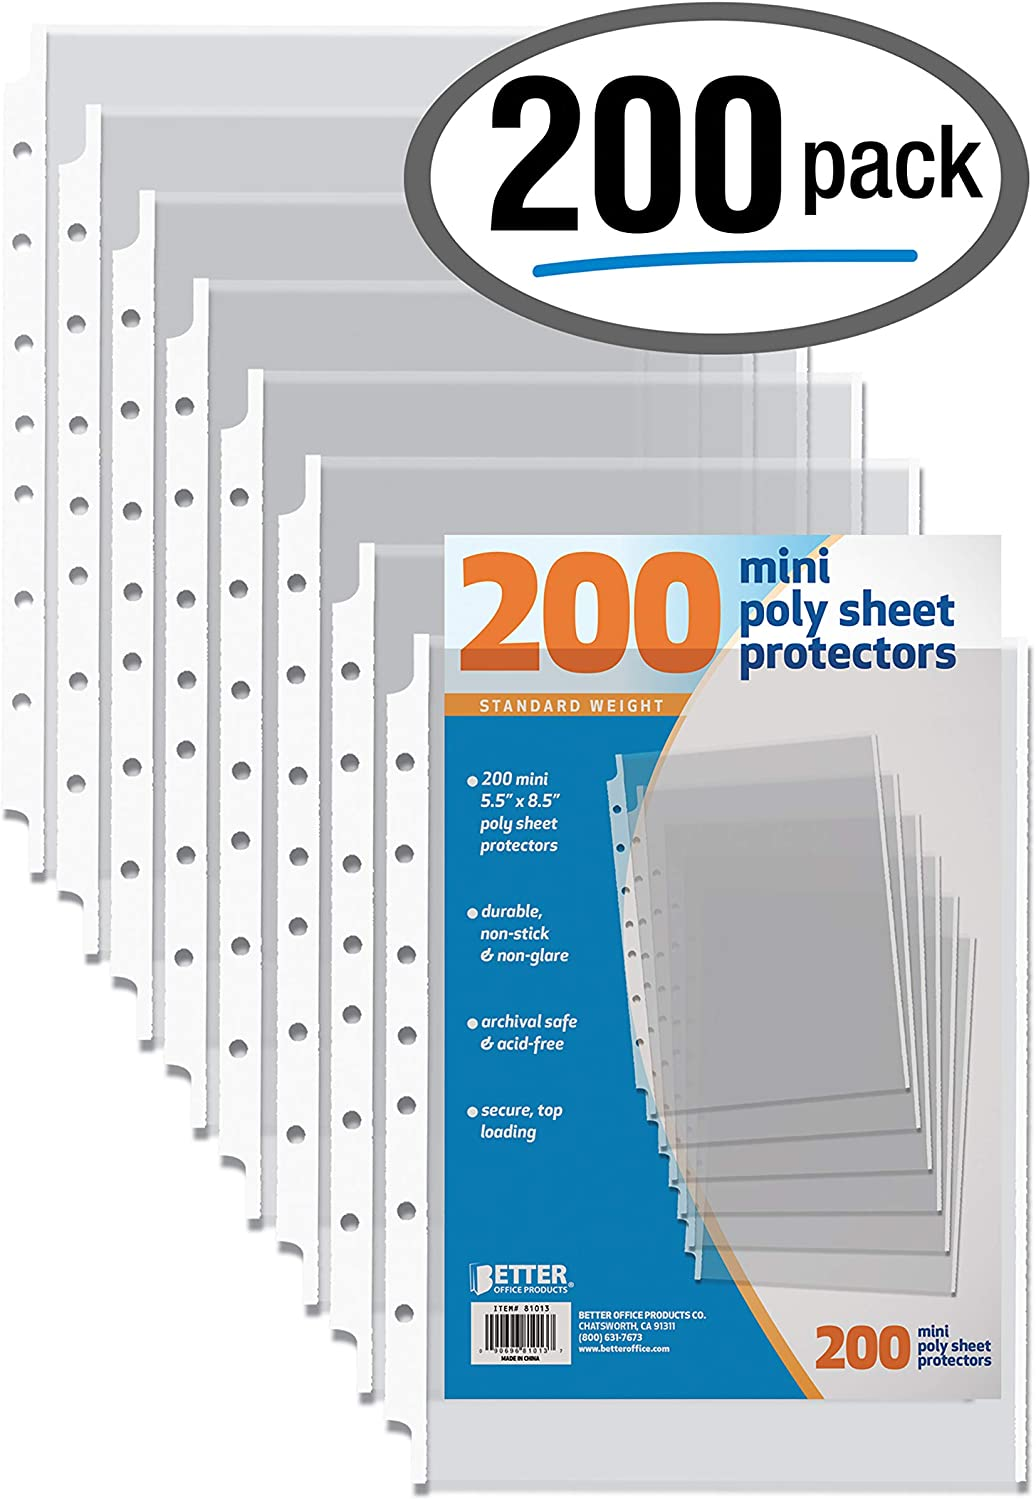 """200 Count Mini Poly Sheet Protectors, Standard Weight, Diamond Clear, by Better Office Products, 5.5"""" x 8.5"""", 200 Pack"""